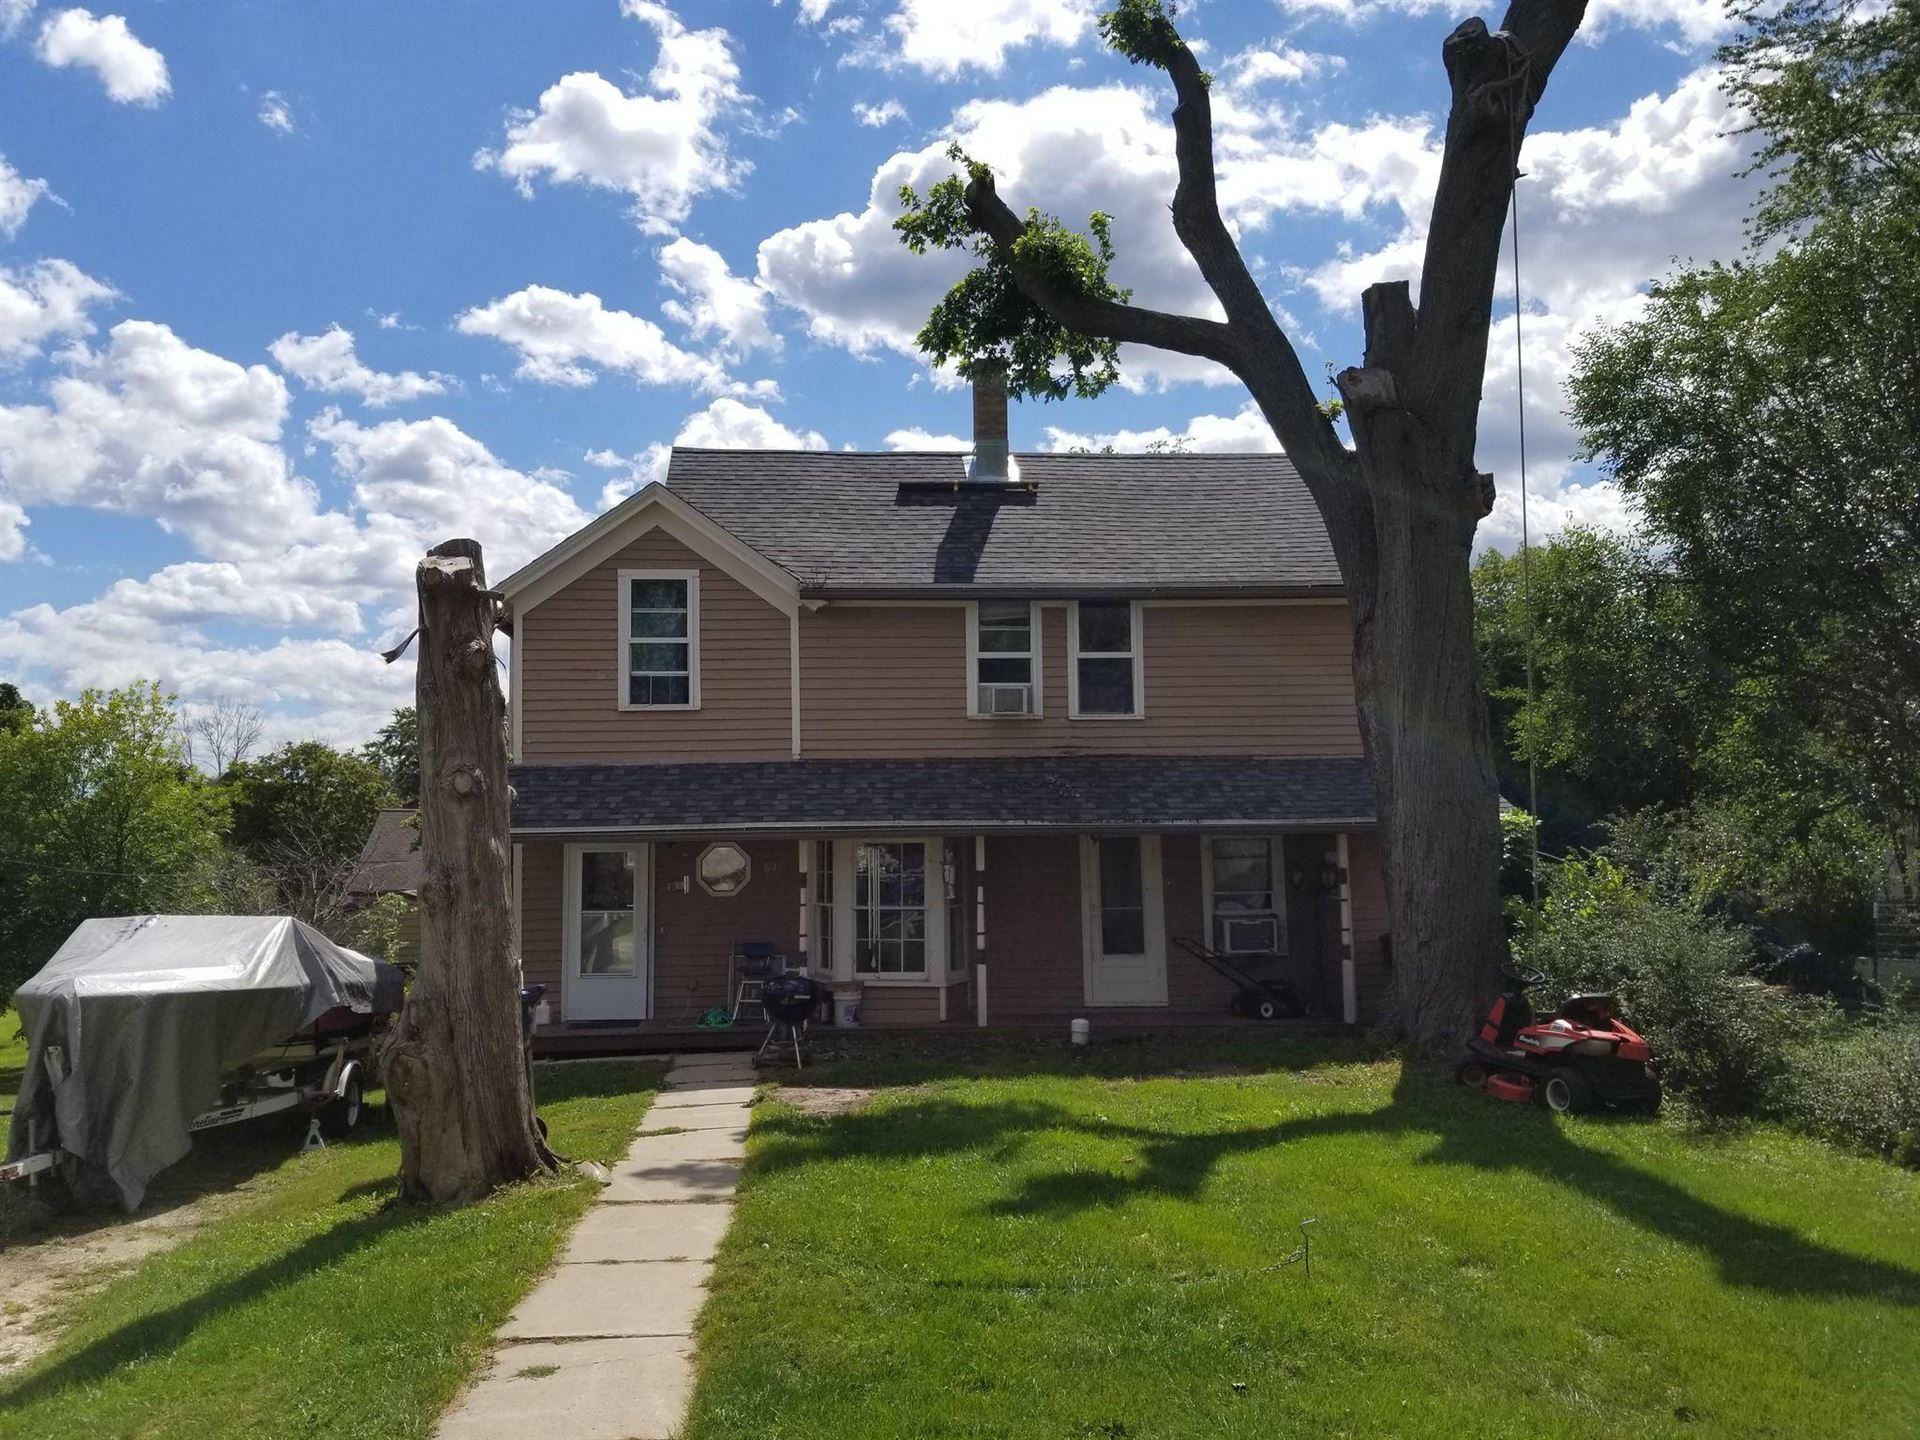 621 Mccolm St, Plymouth, WI 53073 - #: 1708339